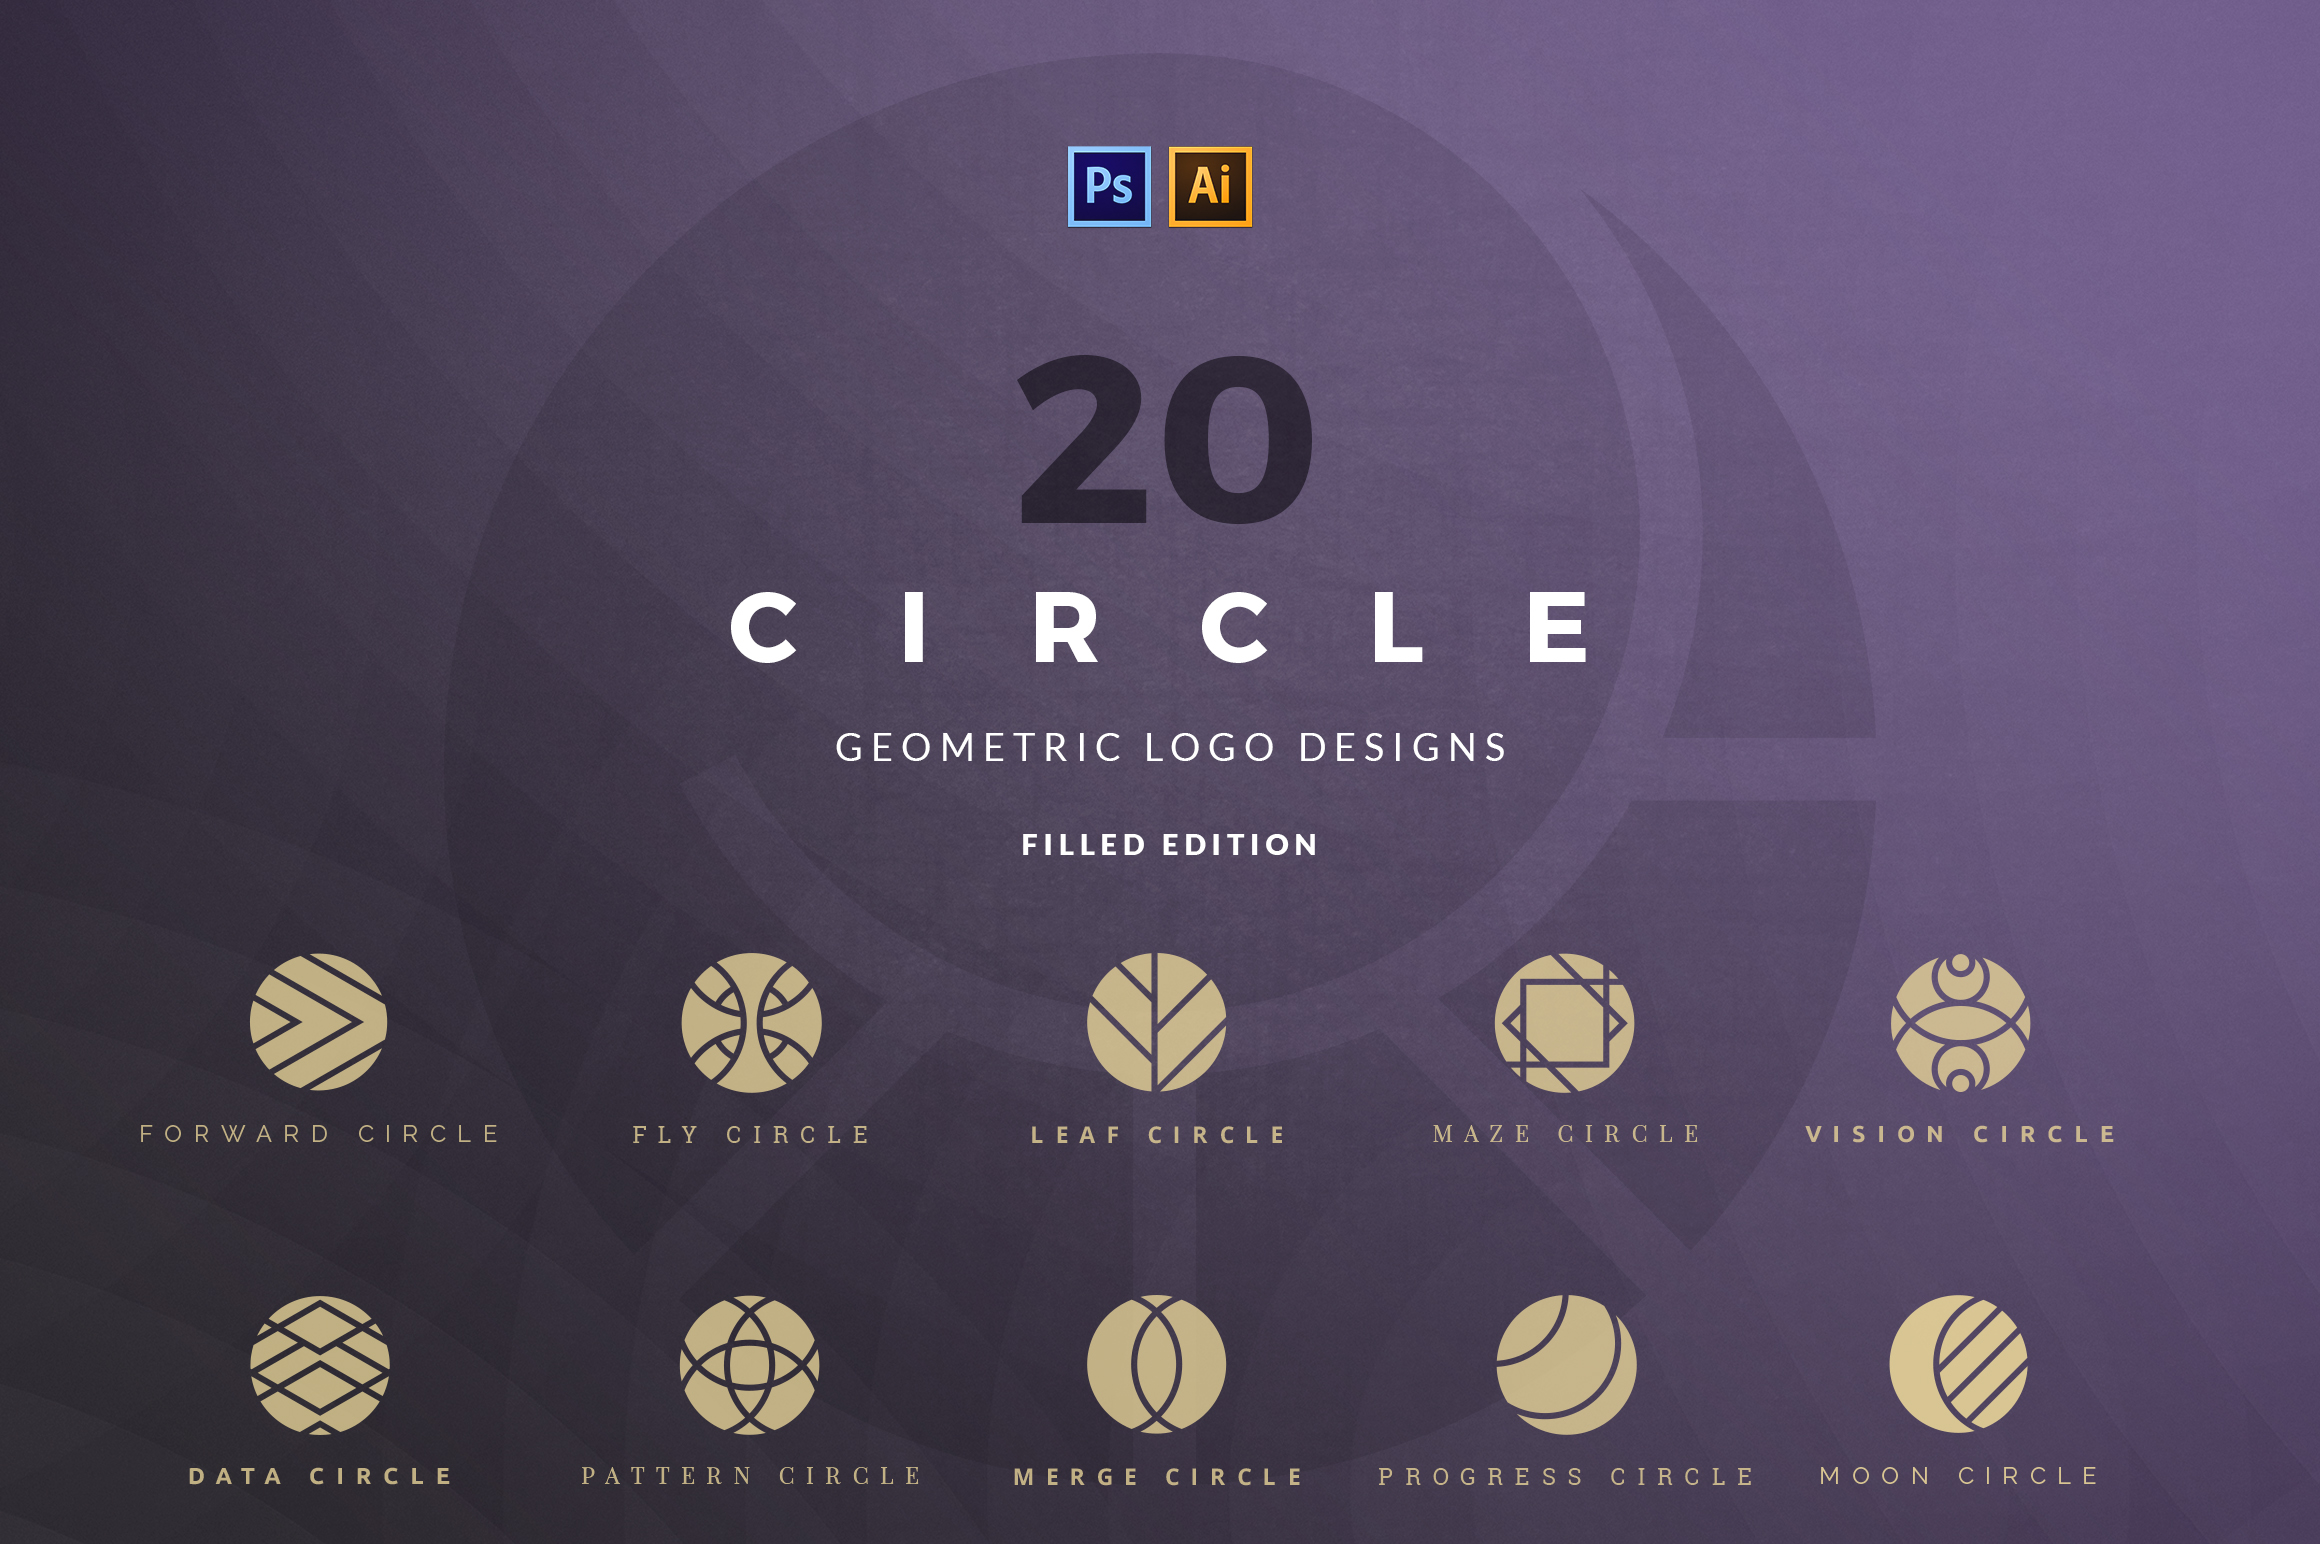 20 Circle Geometric Logos - Filled Grafik von vladfedotovv